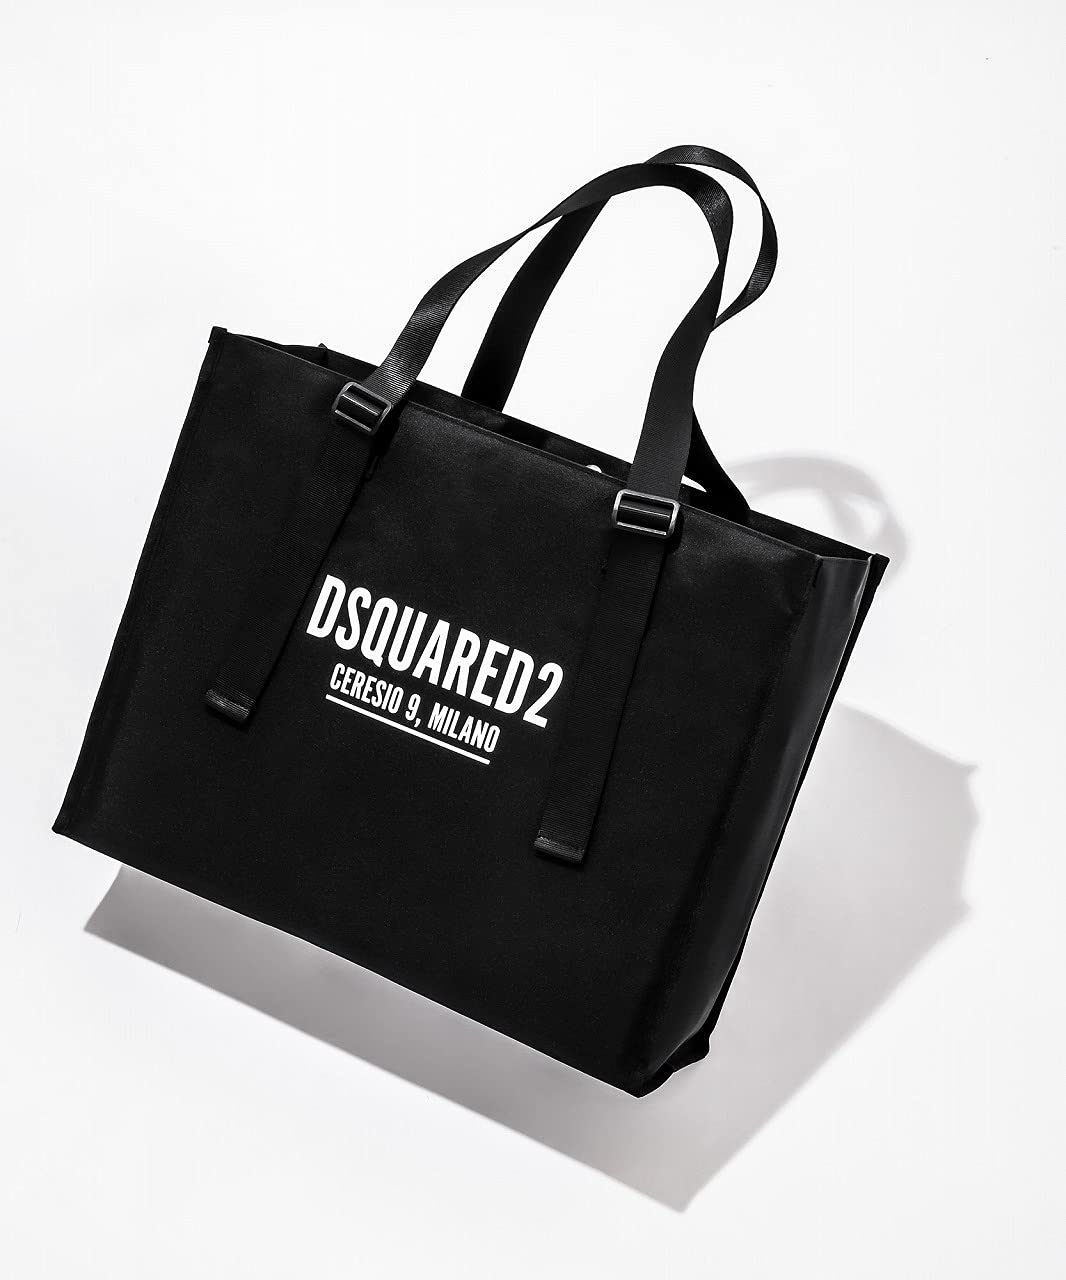 DSQUARED2 SPECIAL BOOK